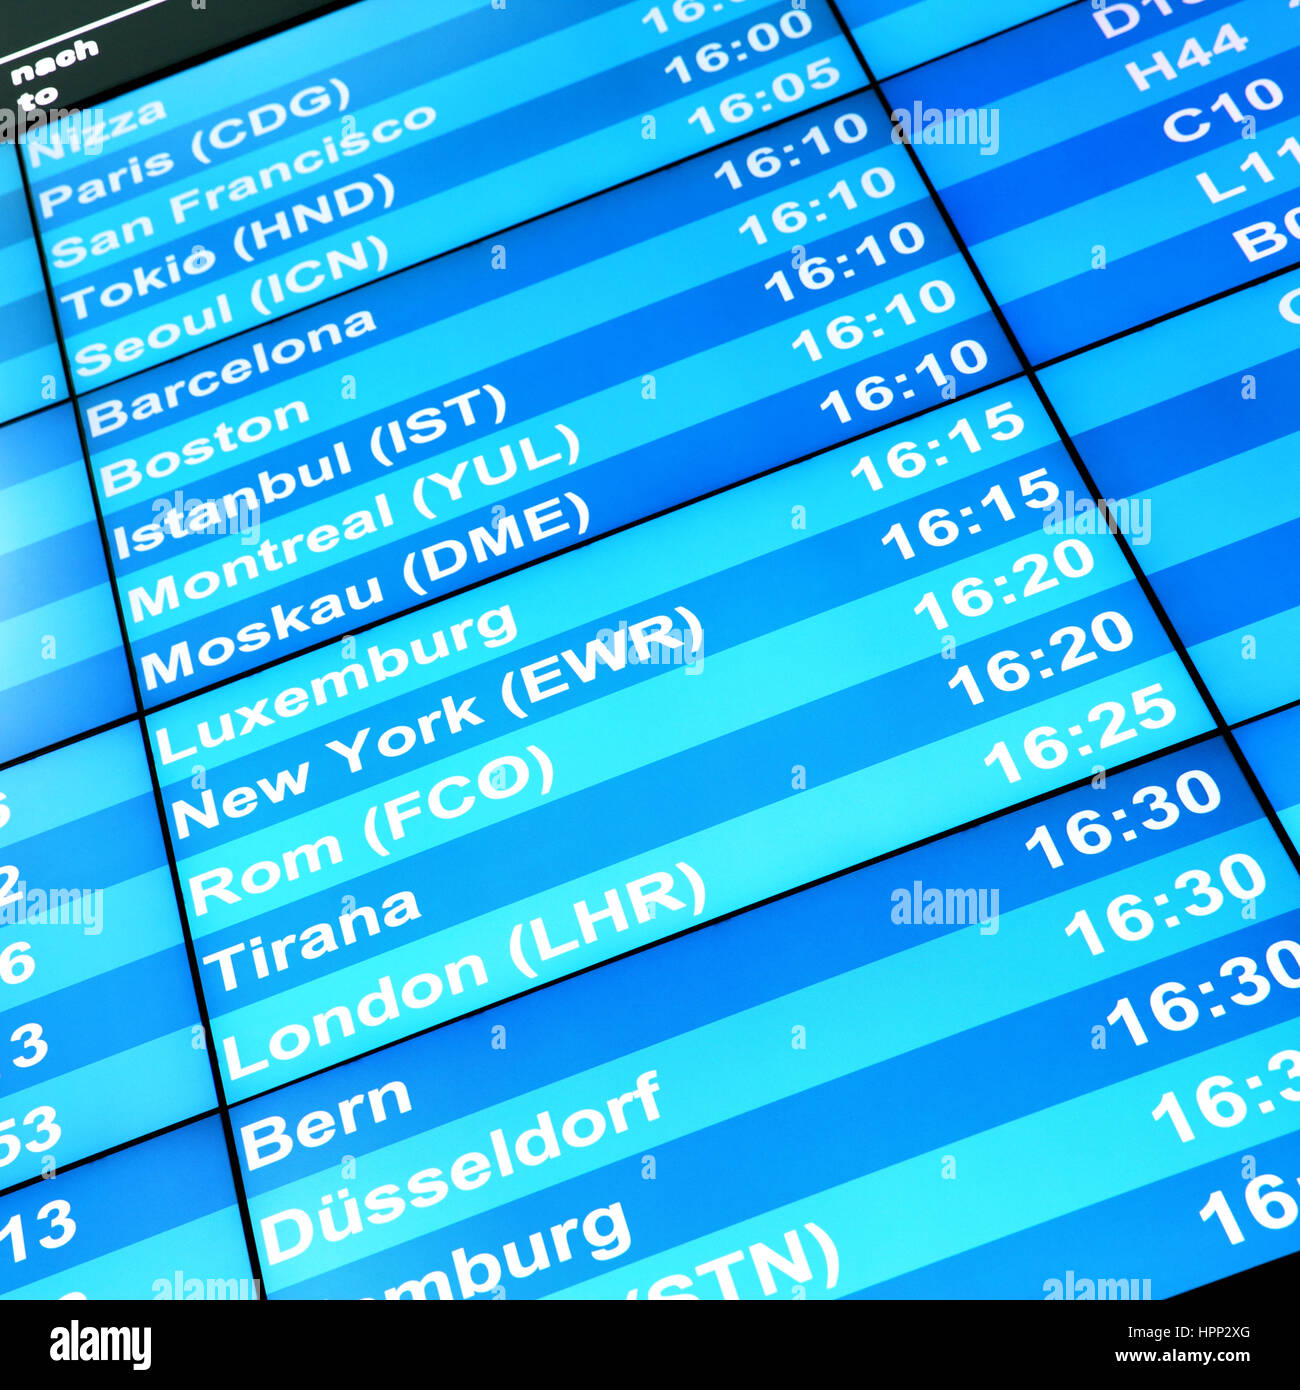 Modern flight information board in an airport - Stock Image